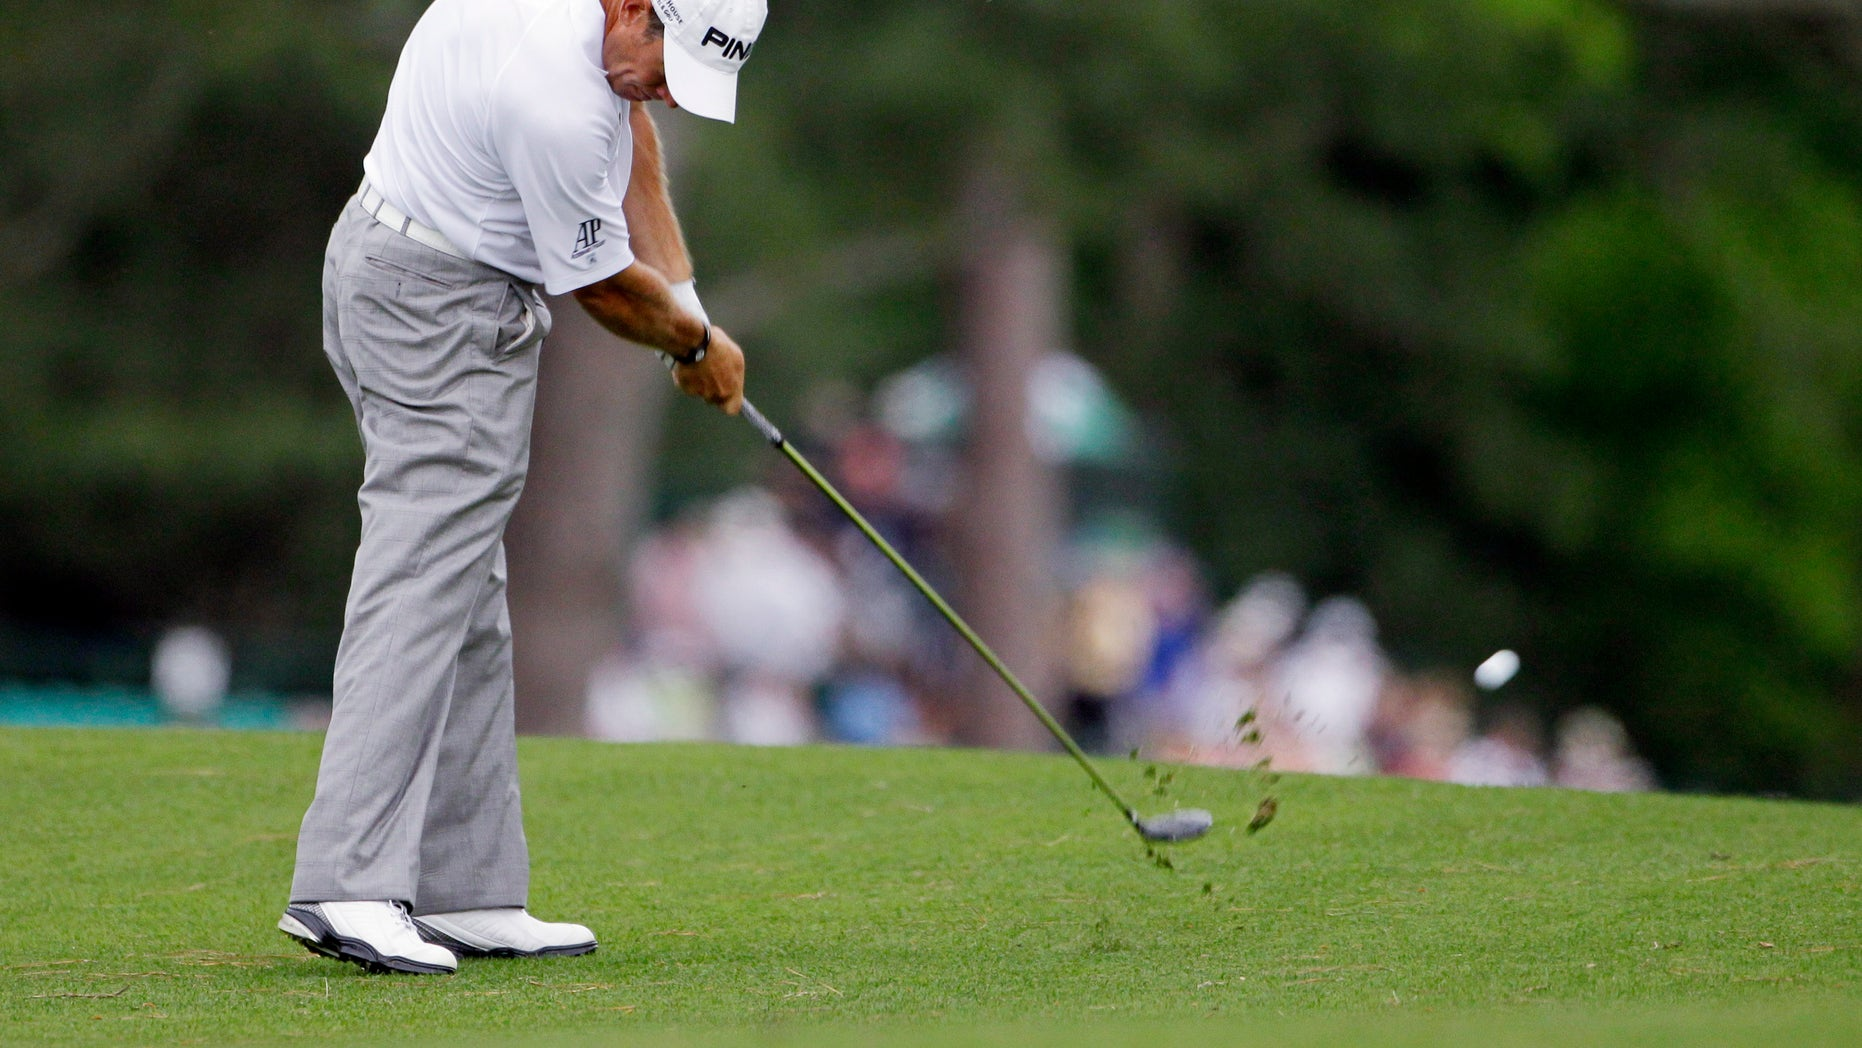 April 5: Lee Westwood, of England, hits his second shot on the 15th hole during the first round the Masters golf tournament  in Augusta, Ga.